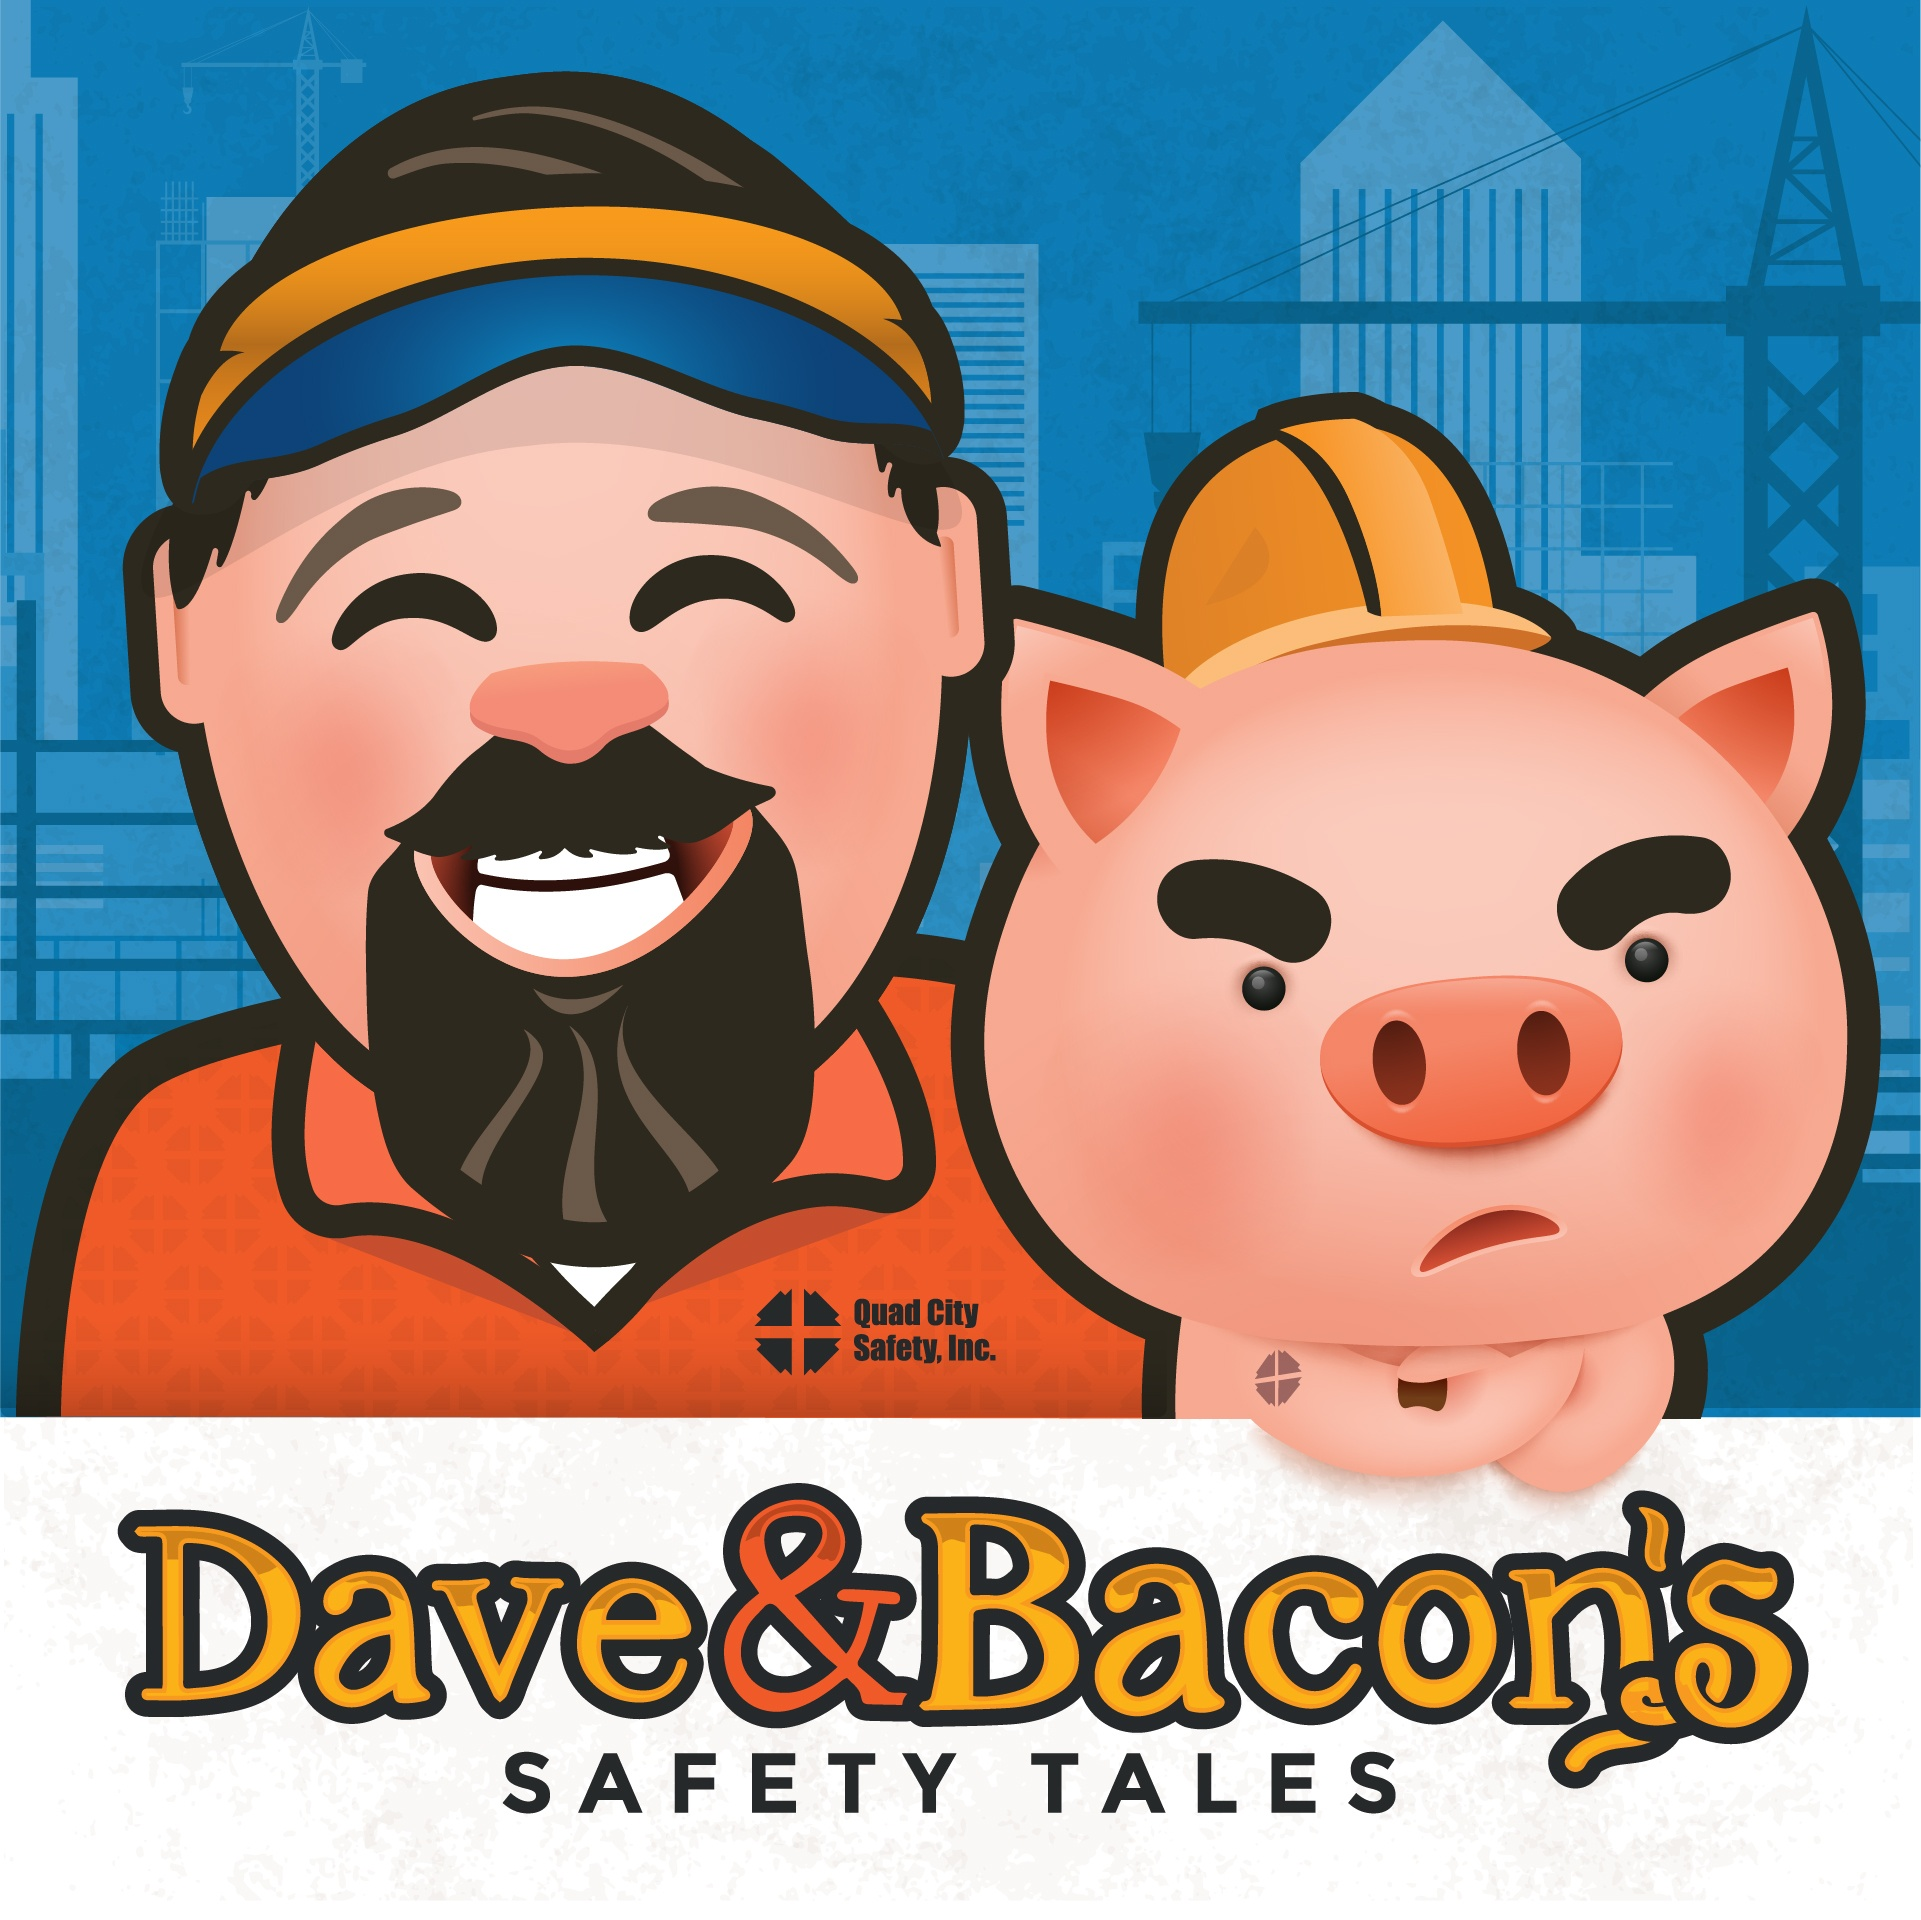 Dave & Bacon;s Safety Tales Industrial Safety Podcast